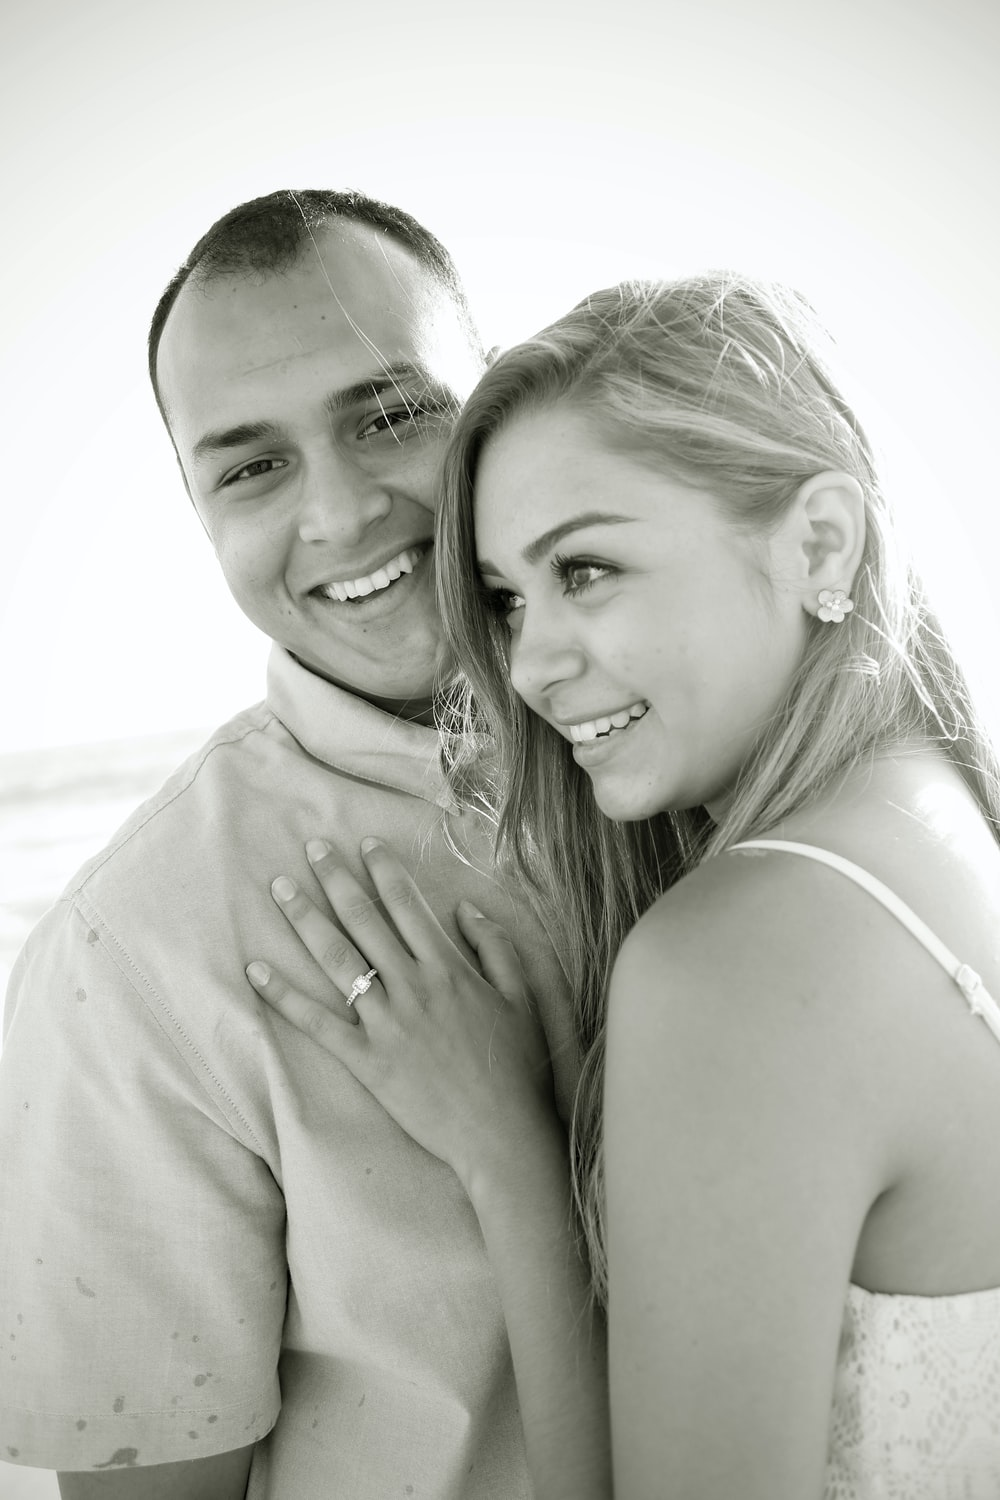 grayscale photo of woman and man smiling